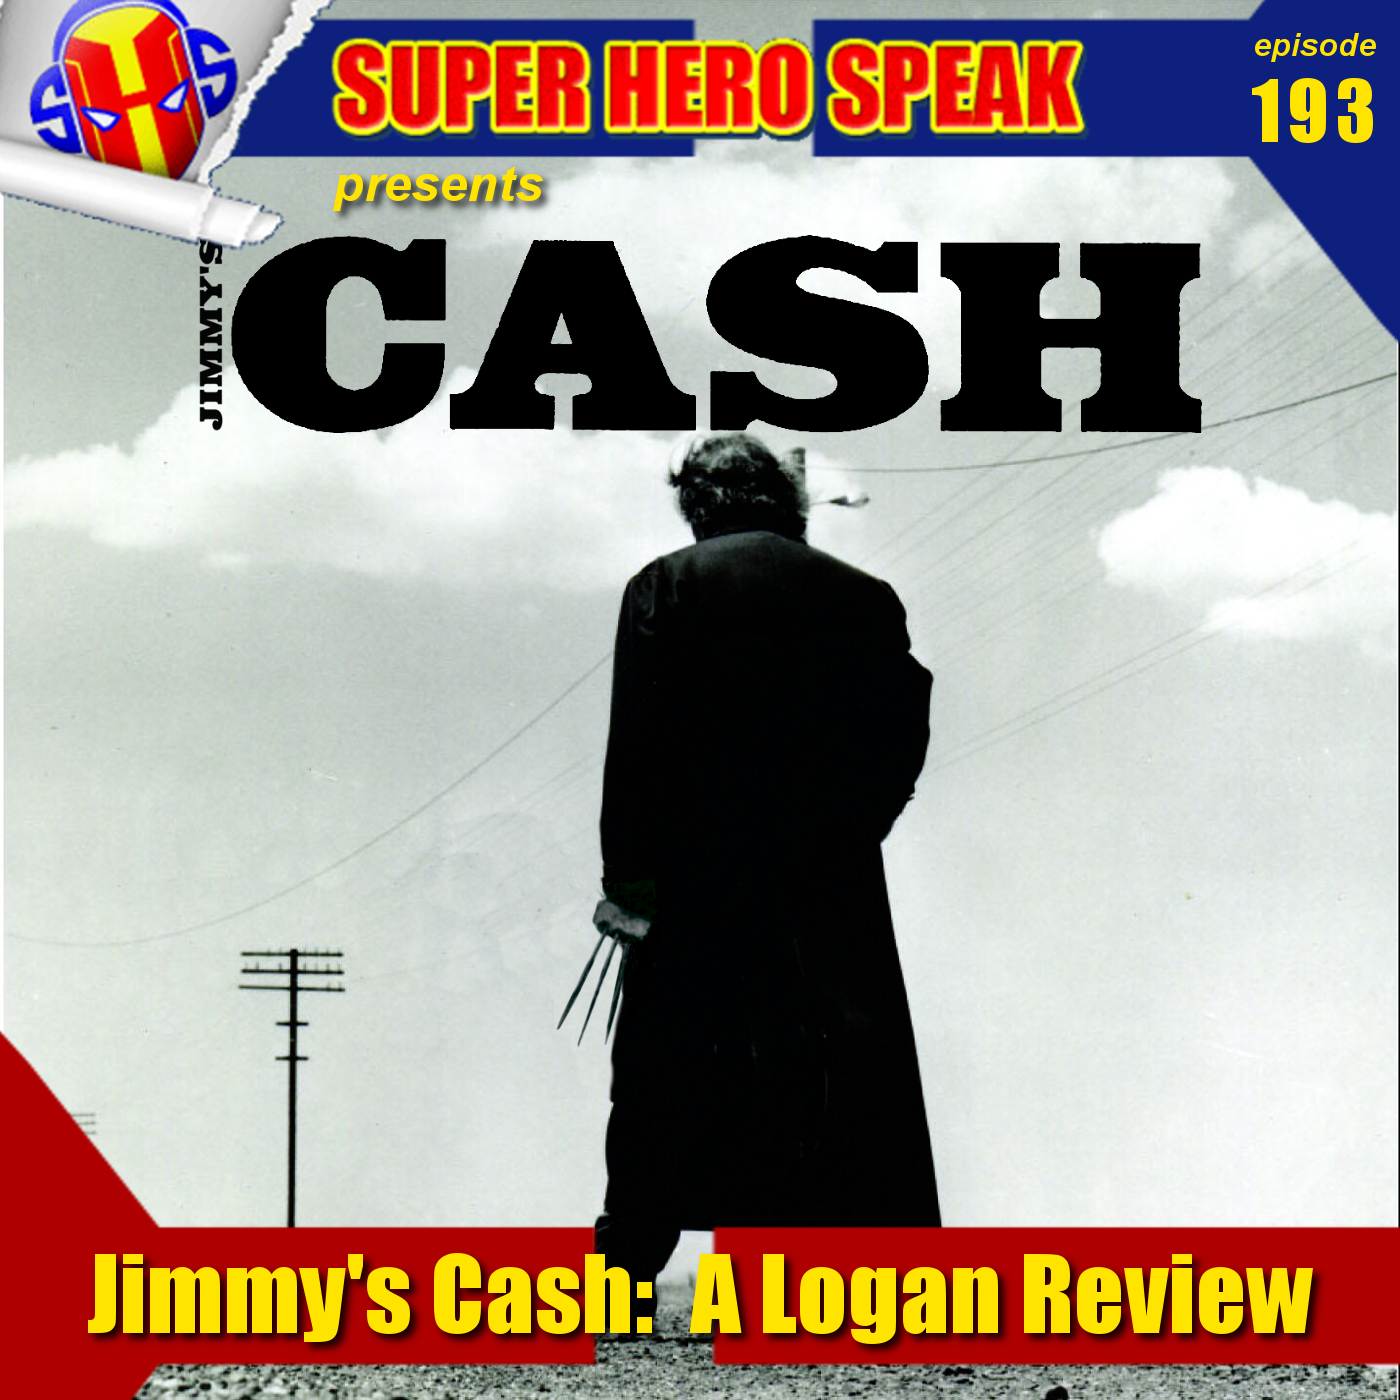 #193: Jimmy's Cash